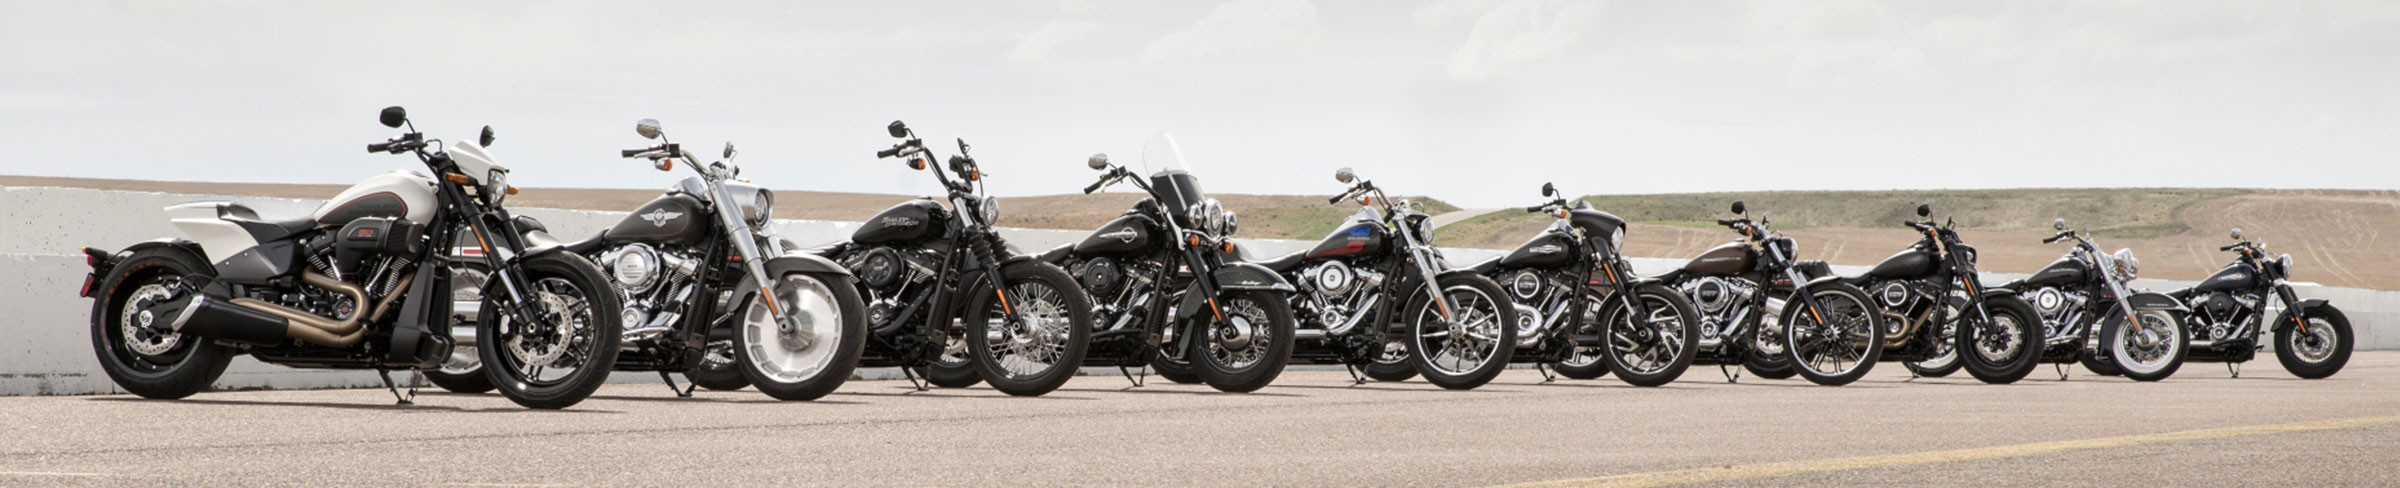 Hall's H-D® Finance Department